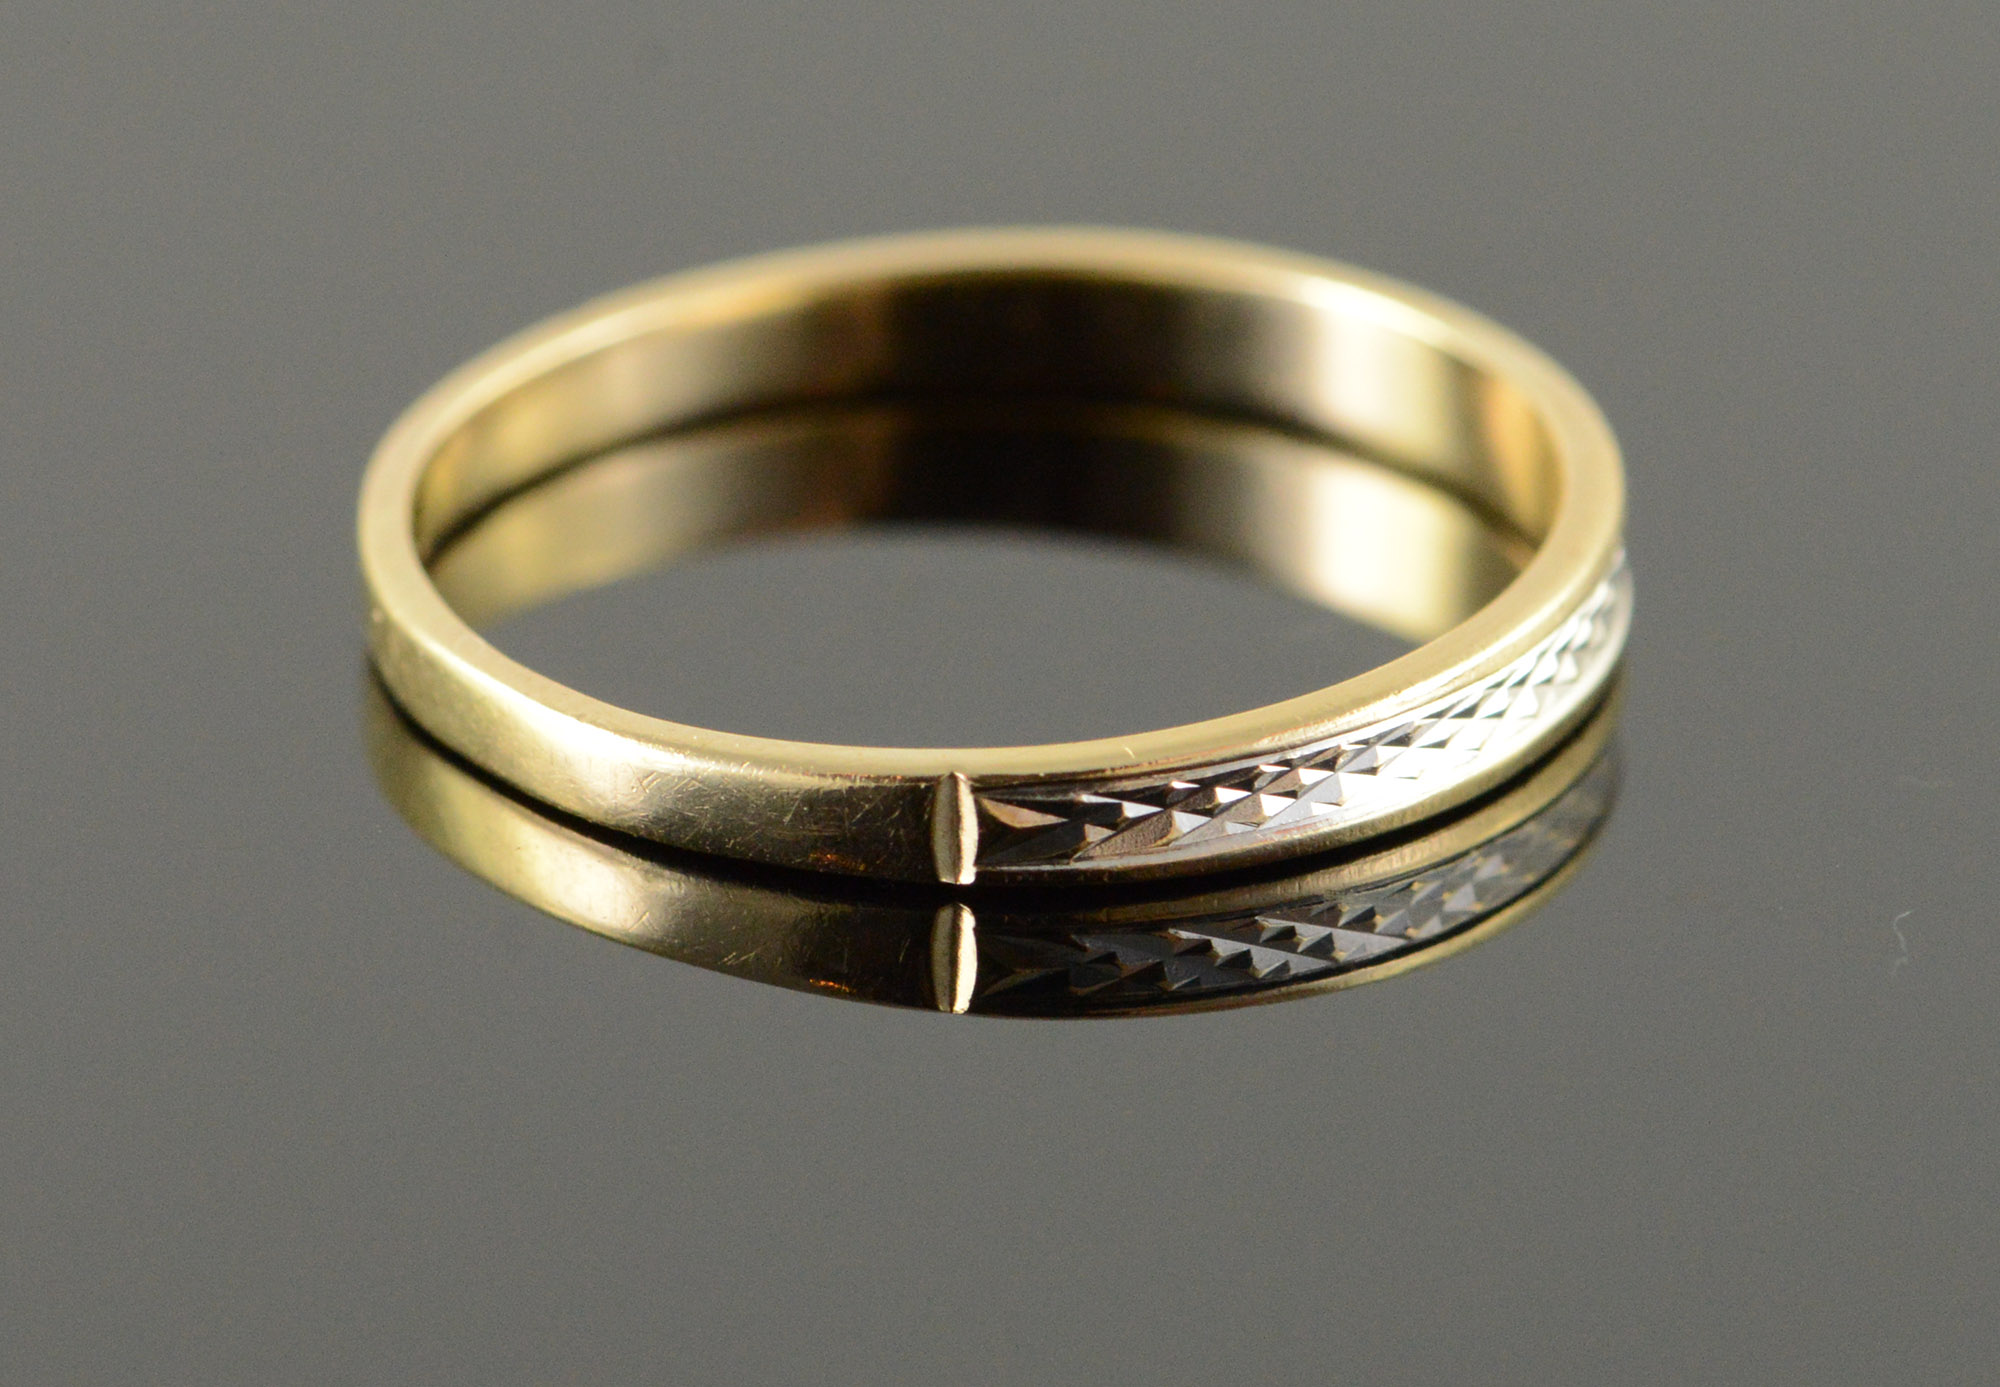 10k 1 4g Two Tone Textured Vintage Wedding Band Yellow Gold Ring Size 8 75